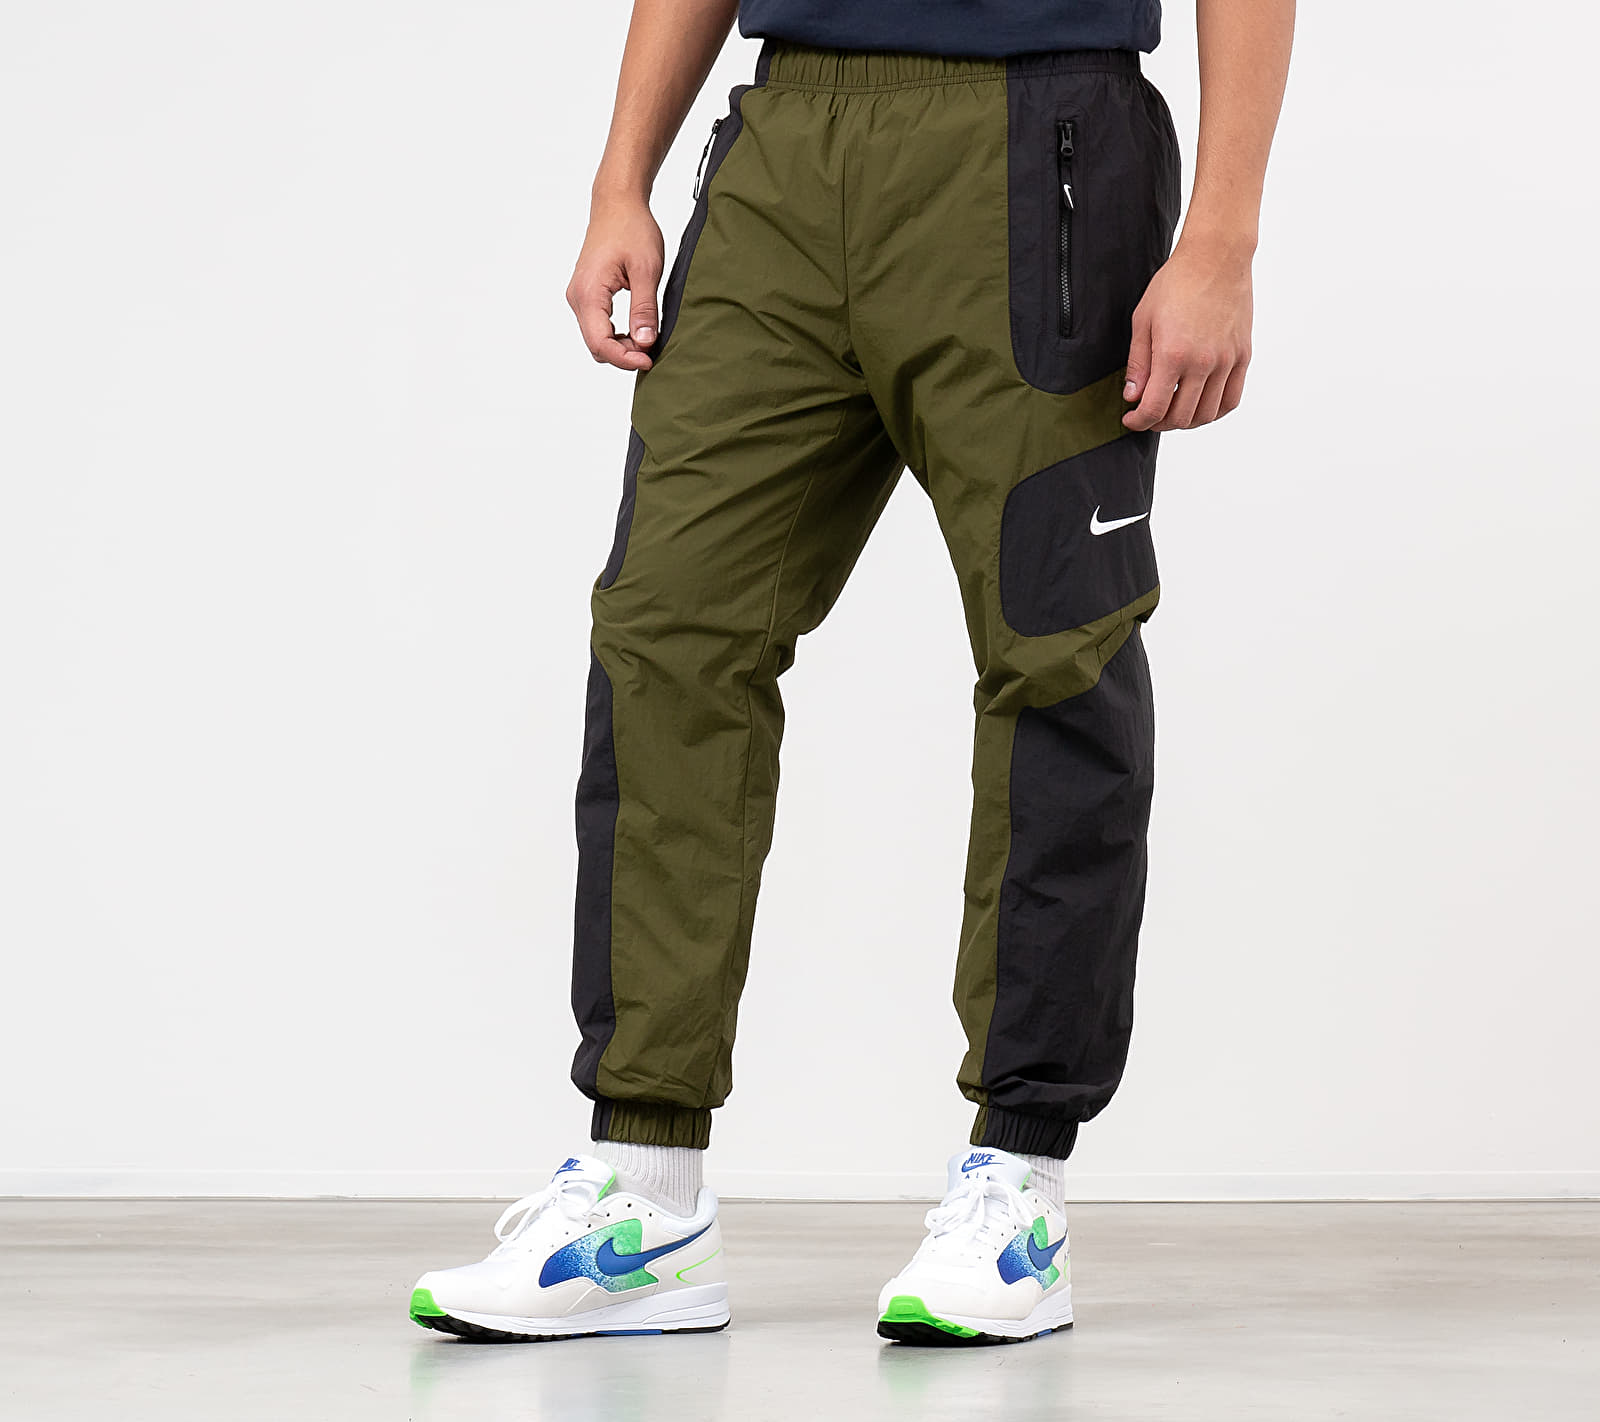 Nike Sportswear Re-Issue Pants Black/ Legion Green/ White